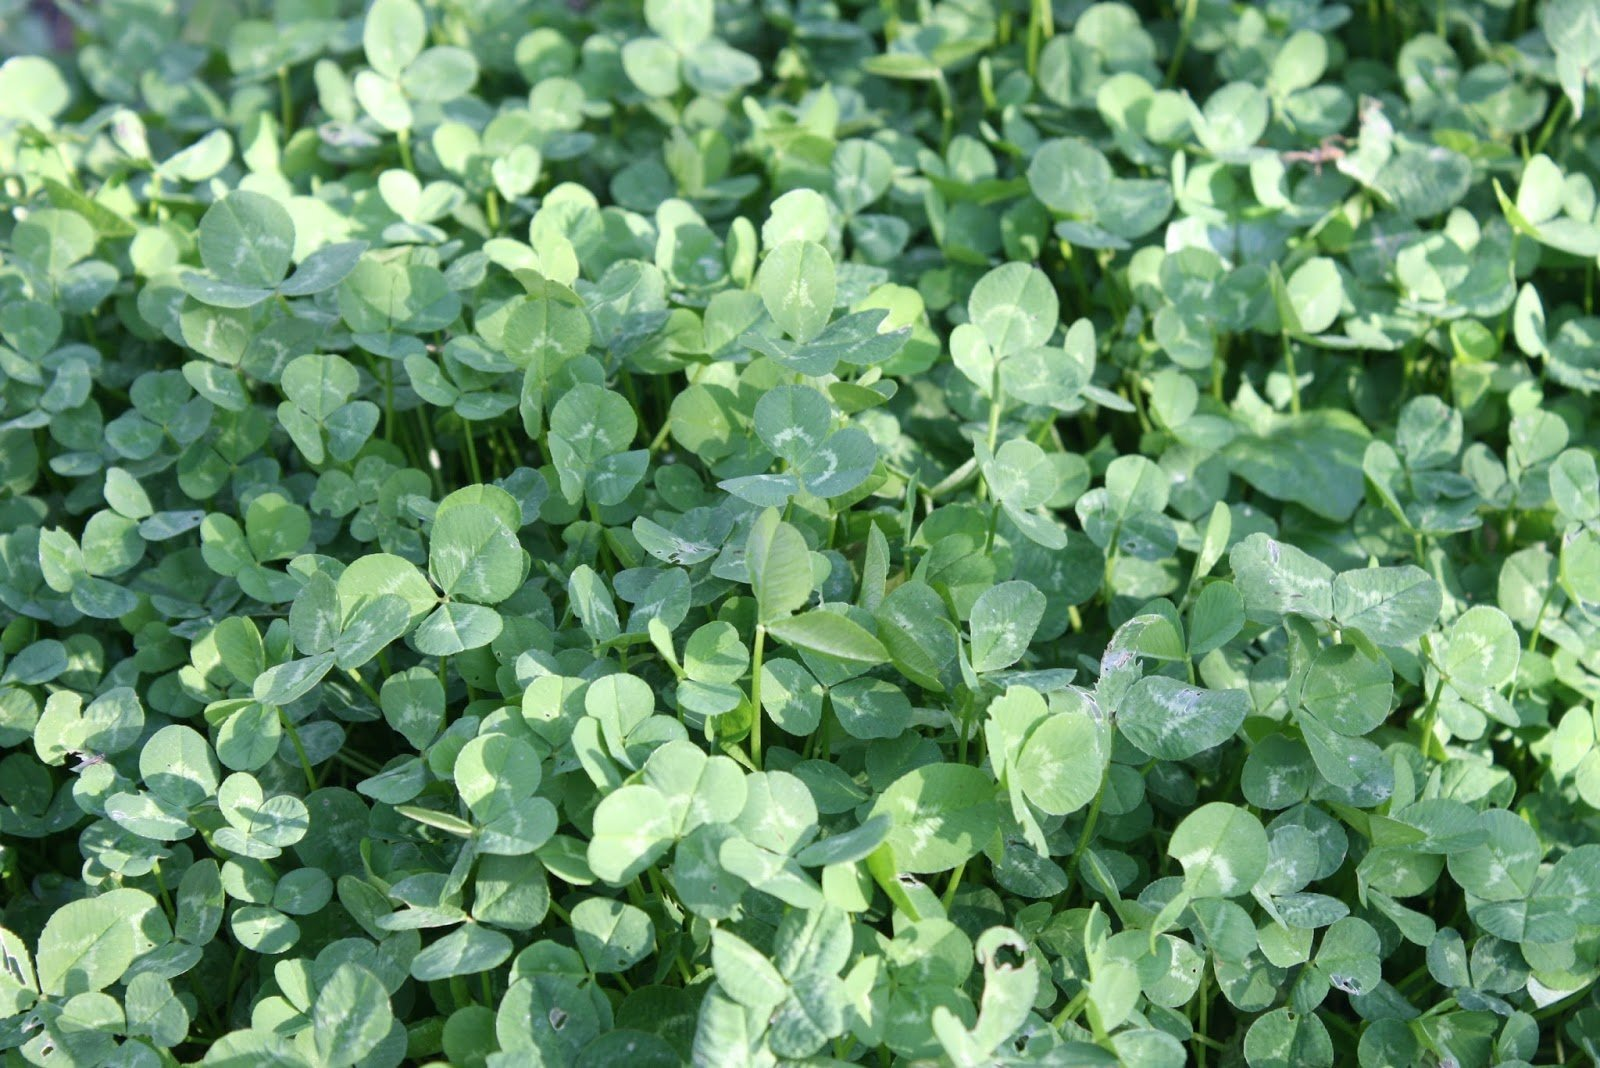 White Clover - Trifolium repens under the shade of a Walnut tree in our forest garden four months after sowing.